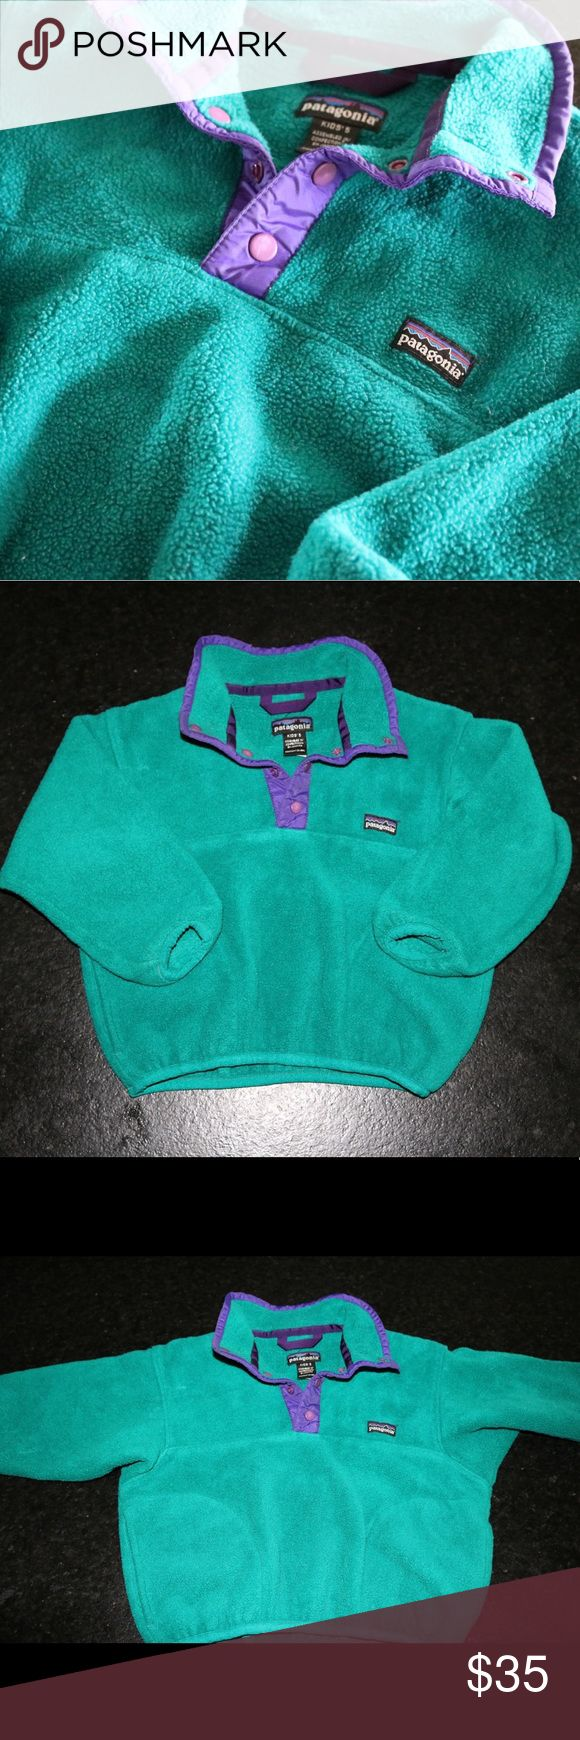 Kids Vintage Patagonia Pullover * Worn multiple times, but still in great condition! * Only sign of wear is name written on back of the tag * Perfect Toddler Pullover for cold months * Patagonia is a great brand that will never go out of style! * If you have any questions please feel free to leave a comment below Patagonia Jackets & Coats